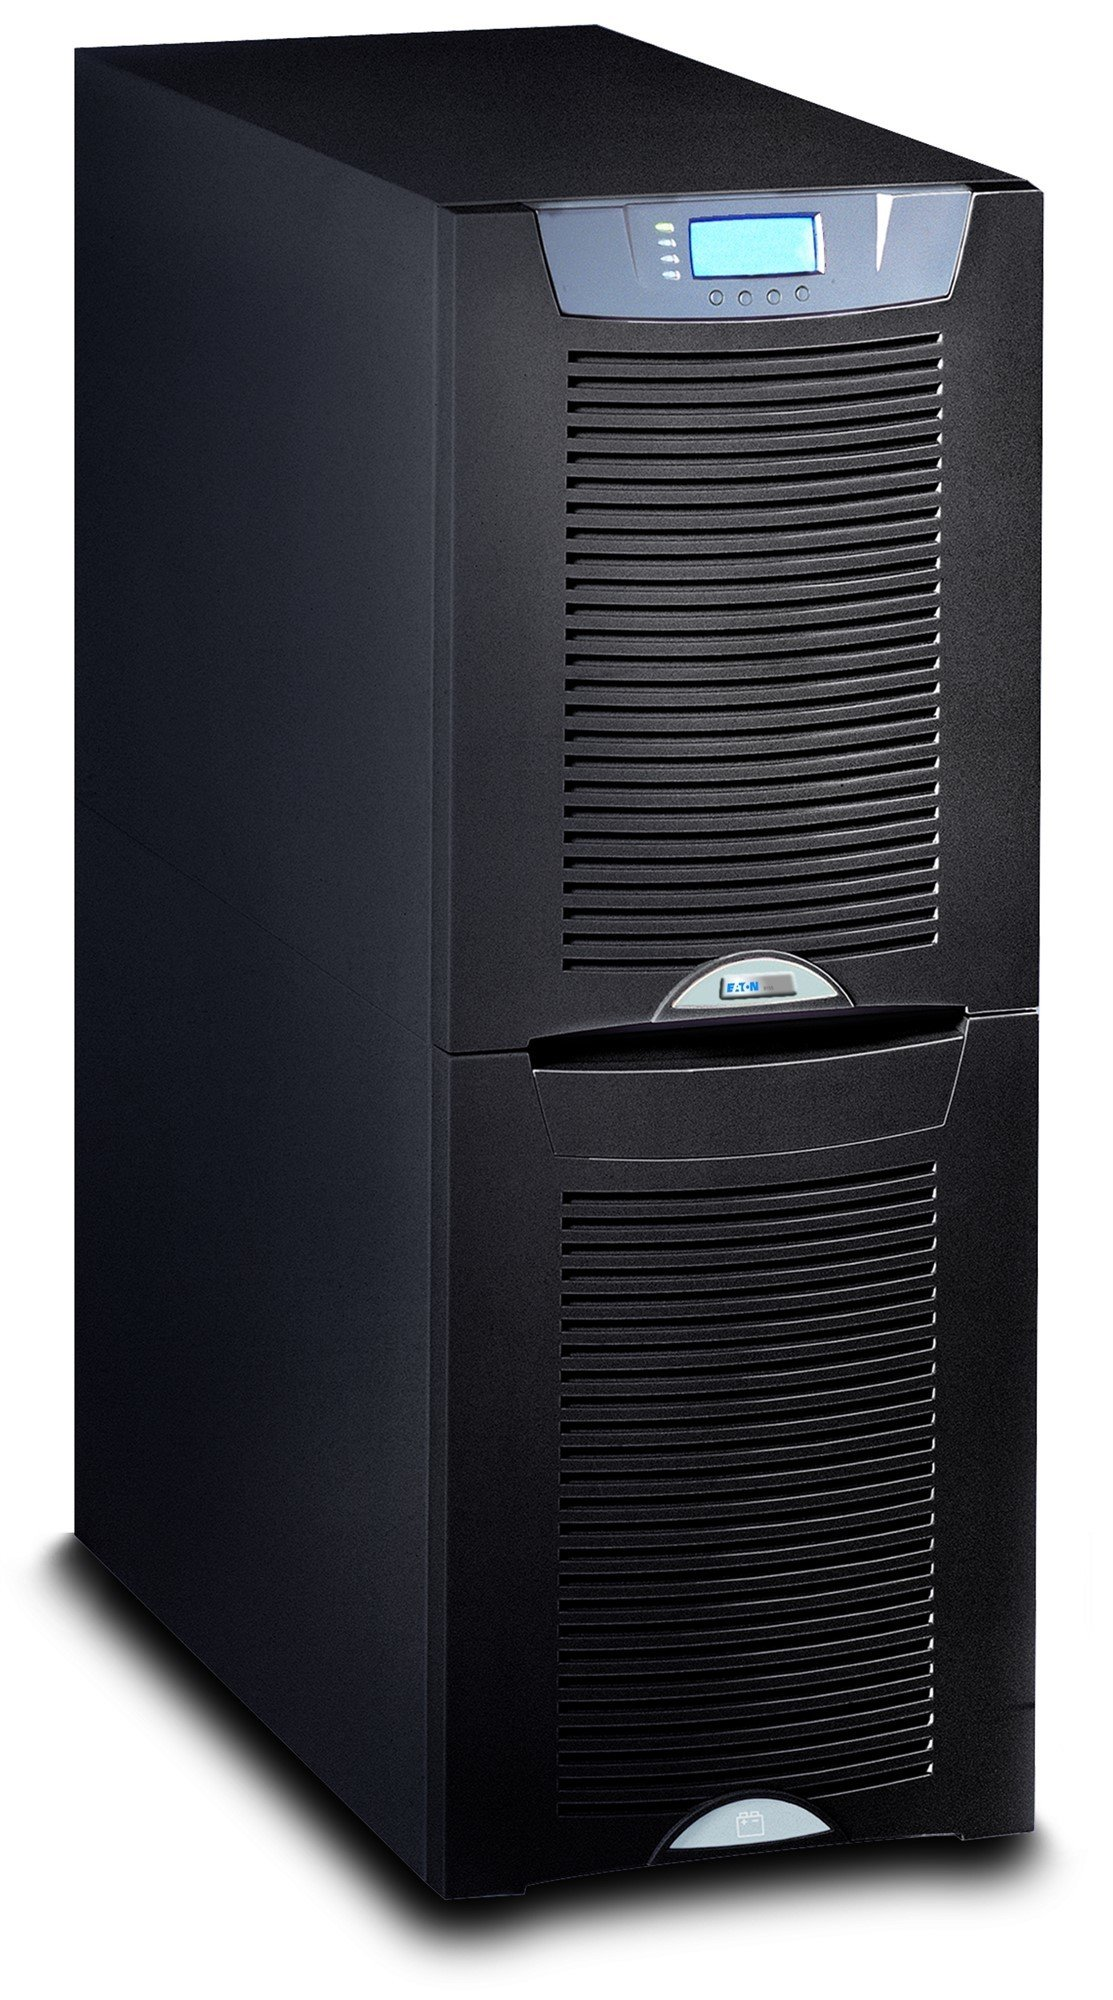 An image of Eaton powerware 9155-10-nhs-25-64x9ah 10000va tower black uninterruptible power ...